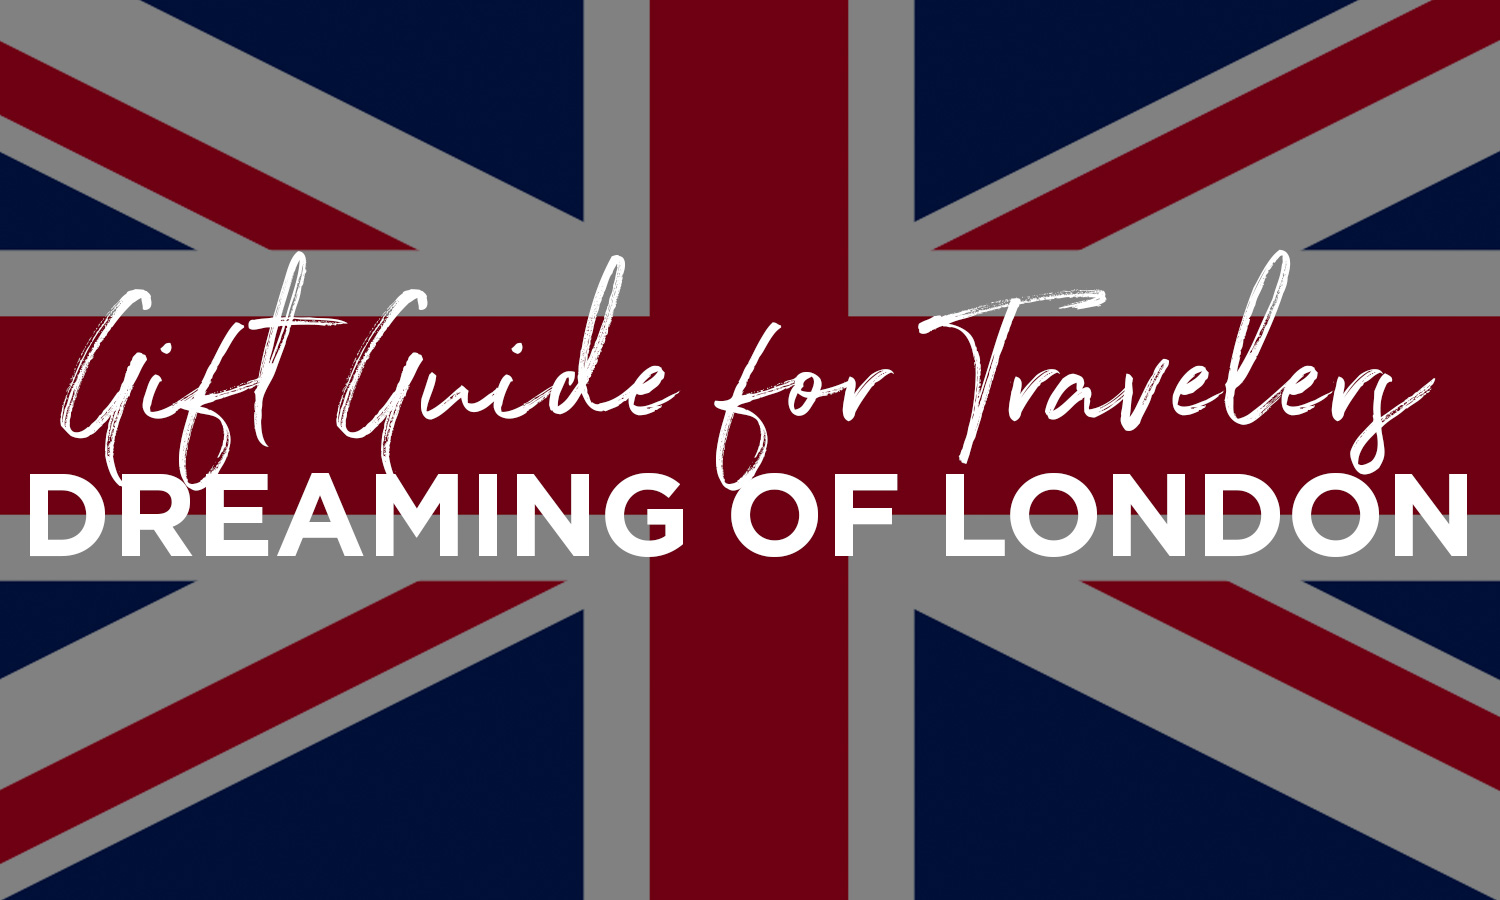 10 English Inspired Gifts Moon Travel Guides